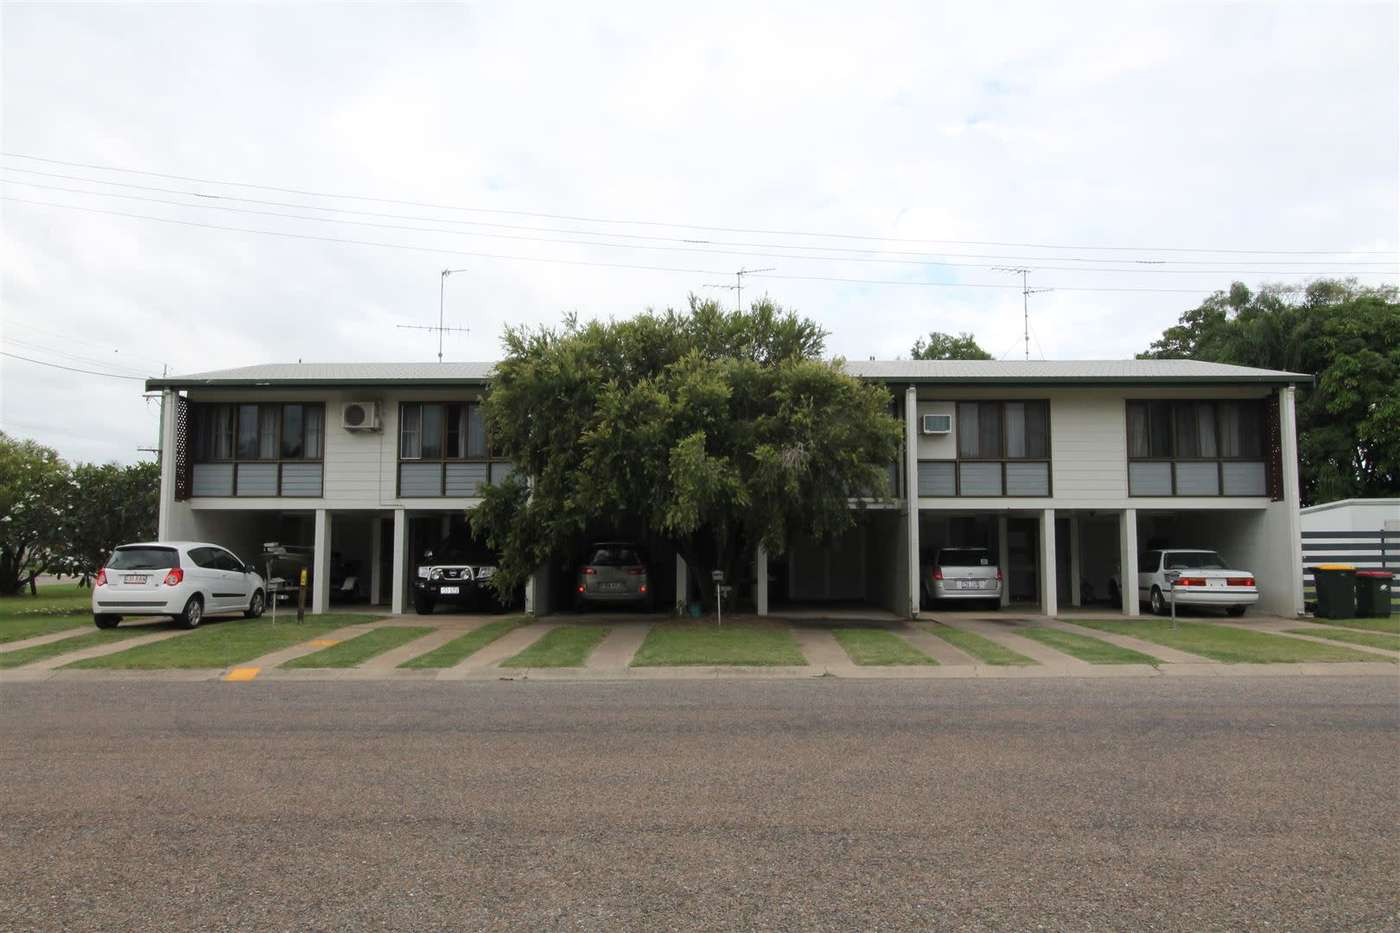 Main view of Homely unit listing, 2-6 Dosetto Street, Ayr, QLD 4807